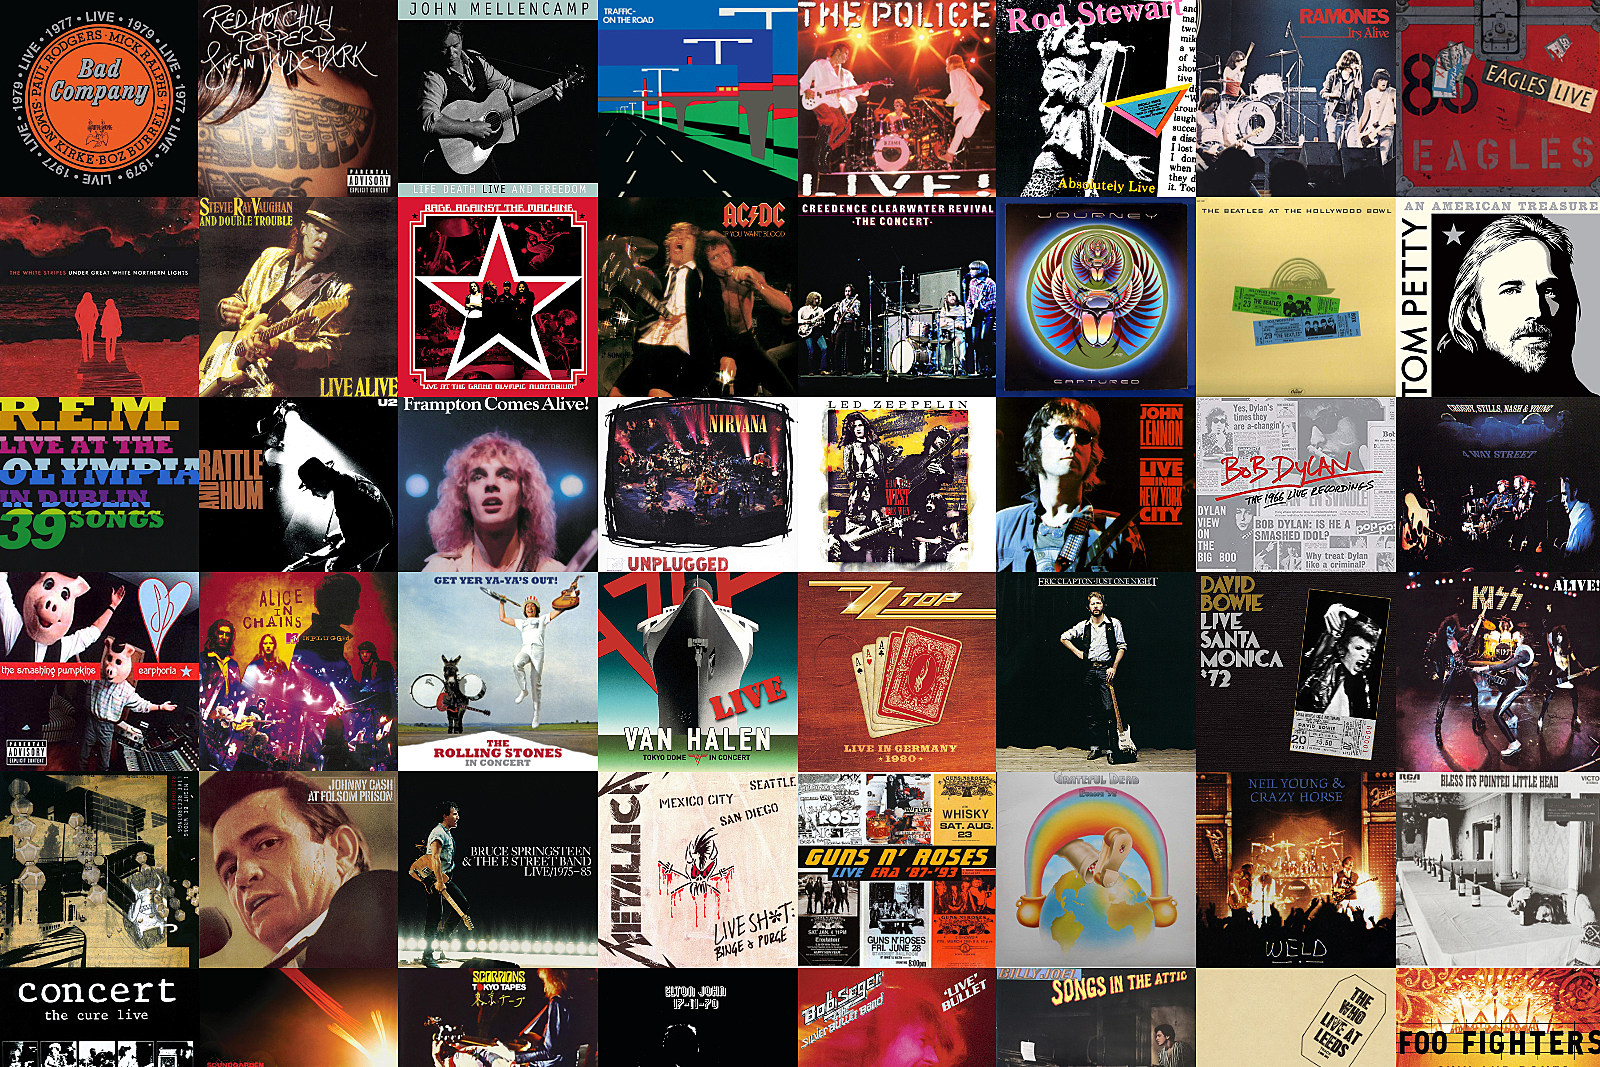 109 Magical Nights: The Most Awesome Live Album From Every Rock Legend